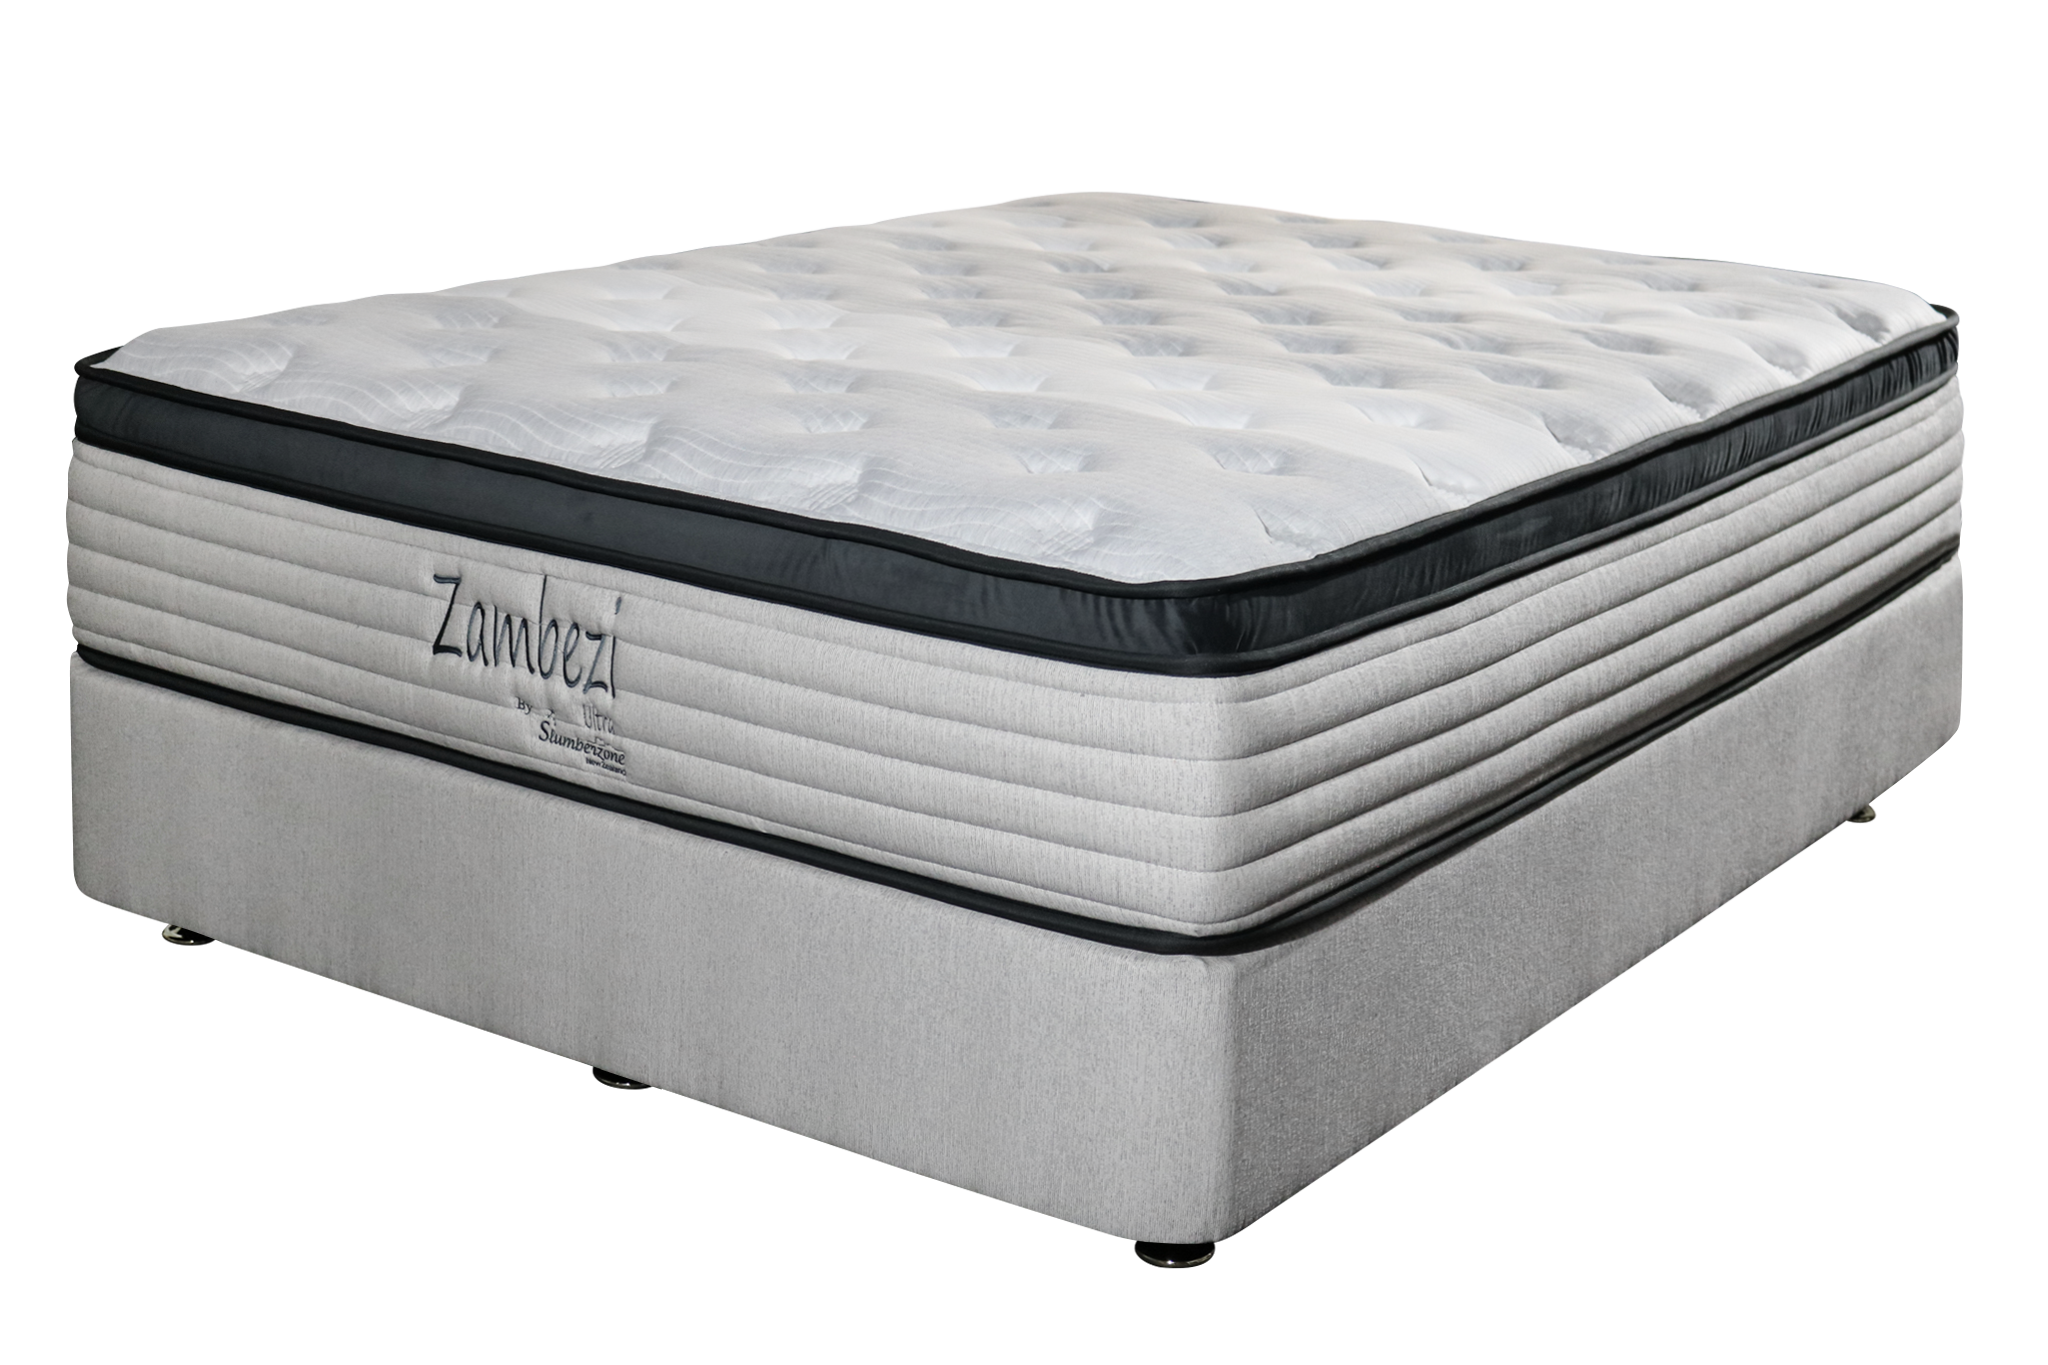 Zambezi Ultra – Super King Bed